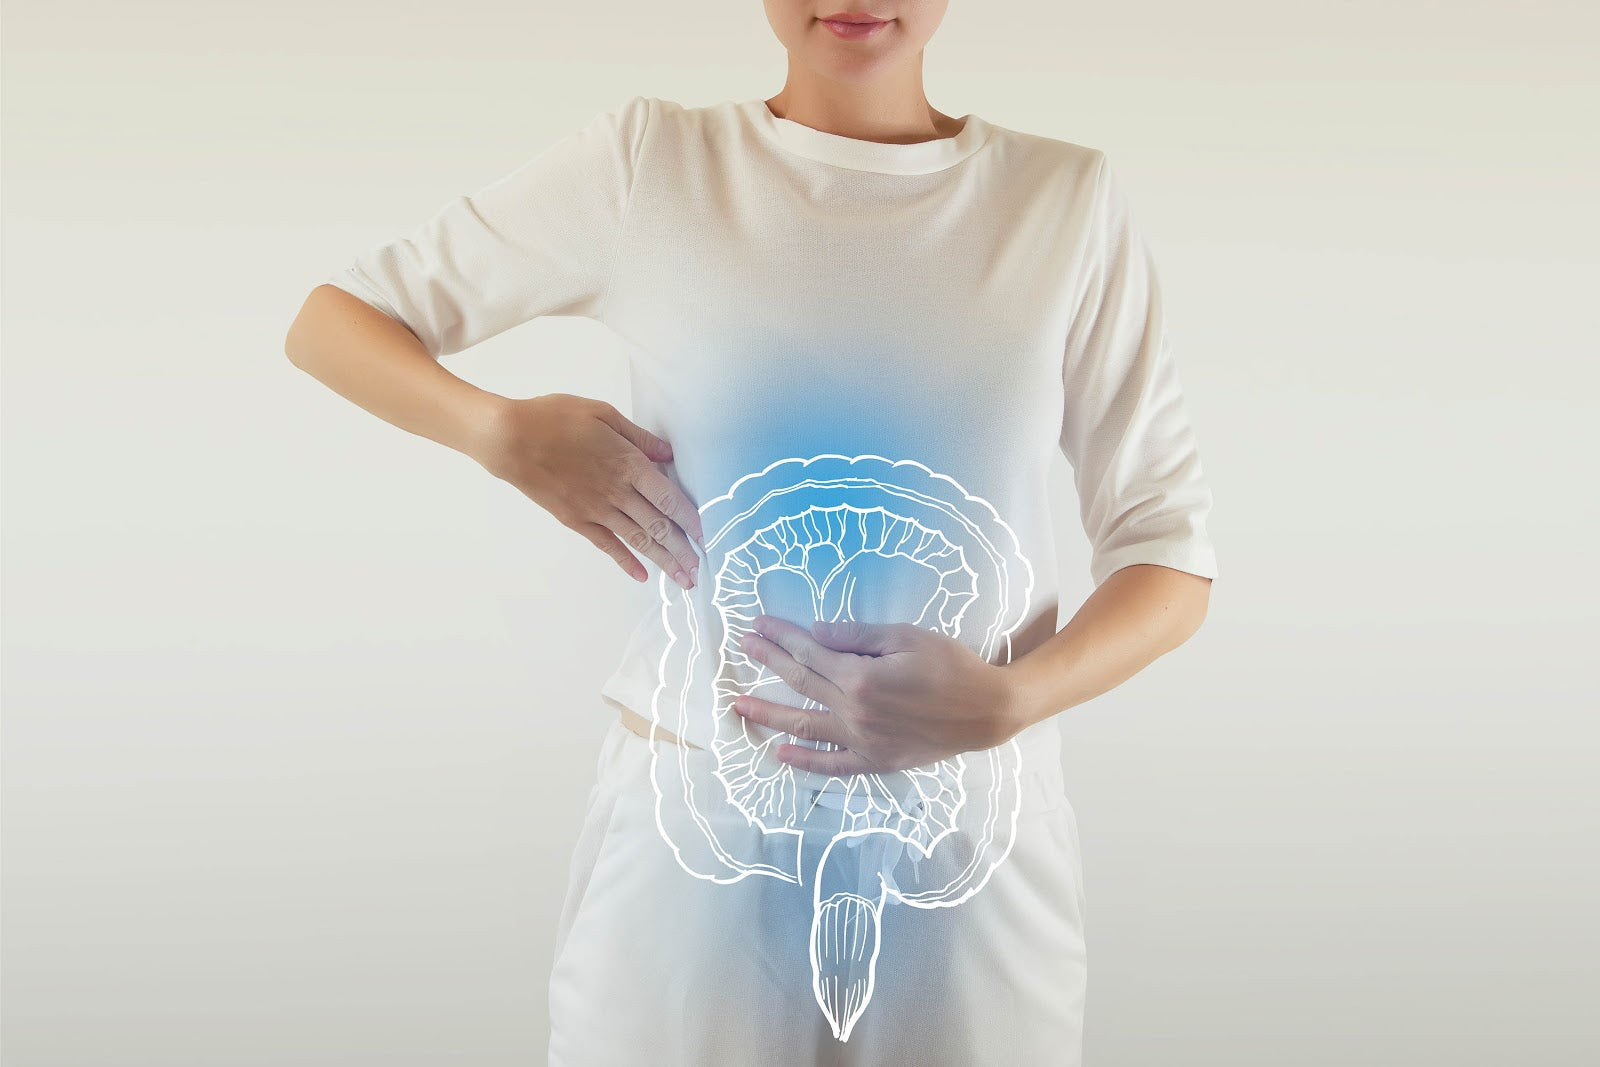 Best Time to Take Probiotics: Digestive illustration on a woman's body